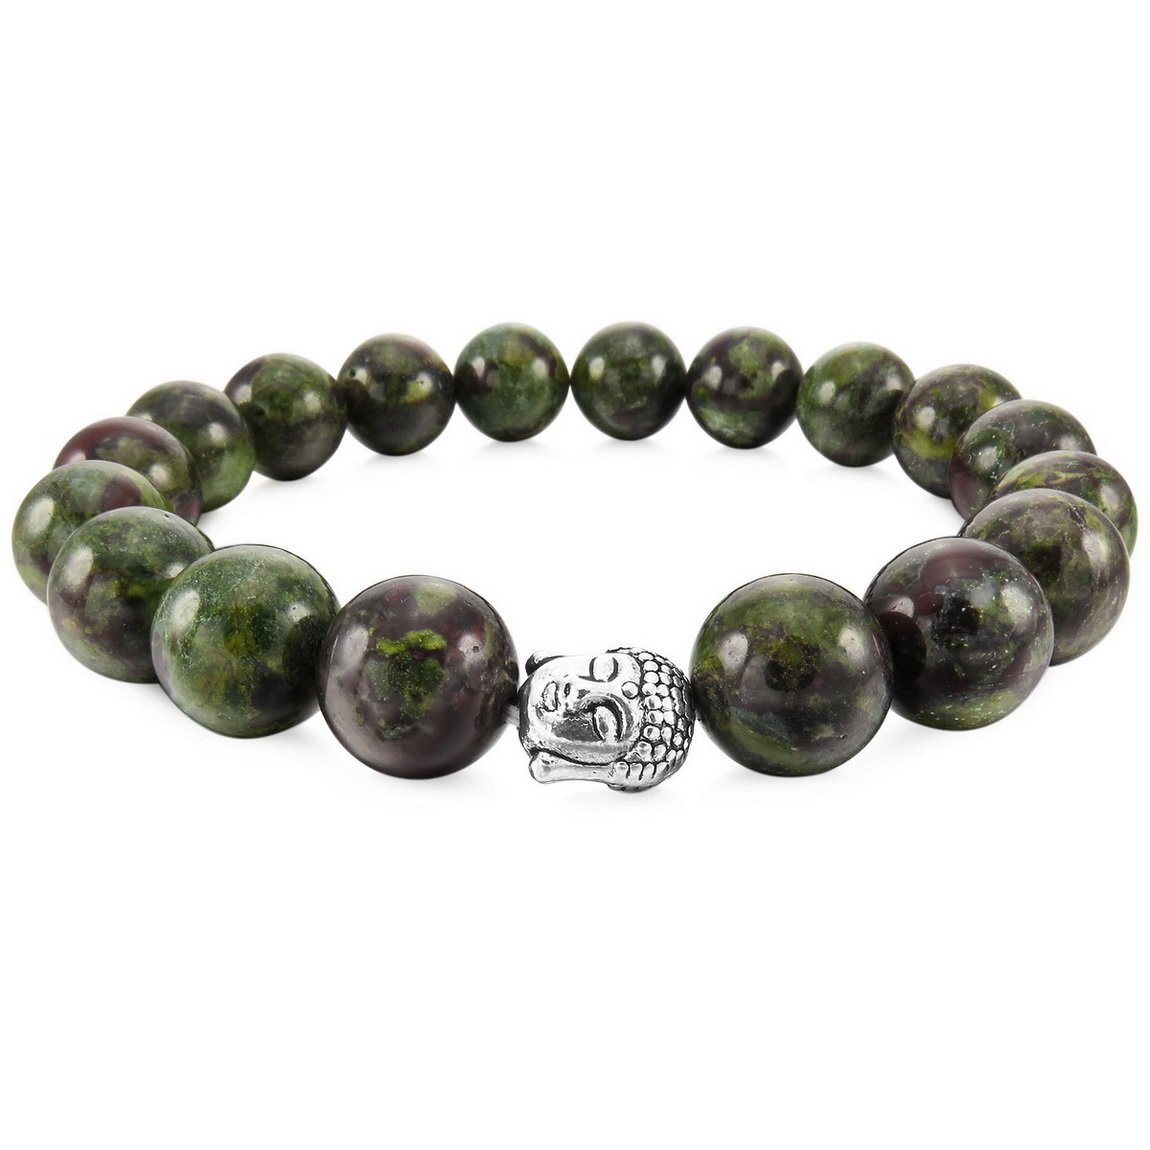 INBLUE Women,Men's 12mm Alloy Energy Bracelet Link Wrist Energy Stone Simulated Buddha Mala Bead